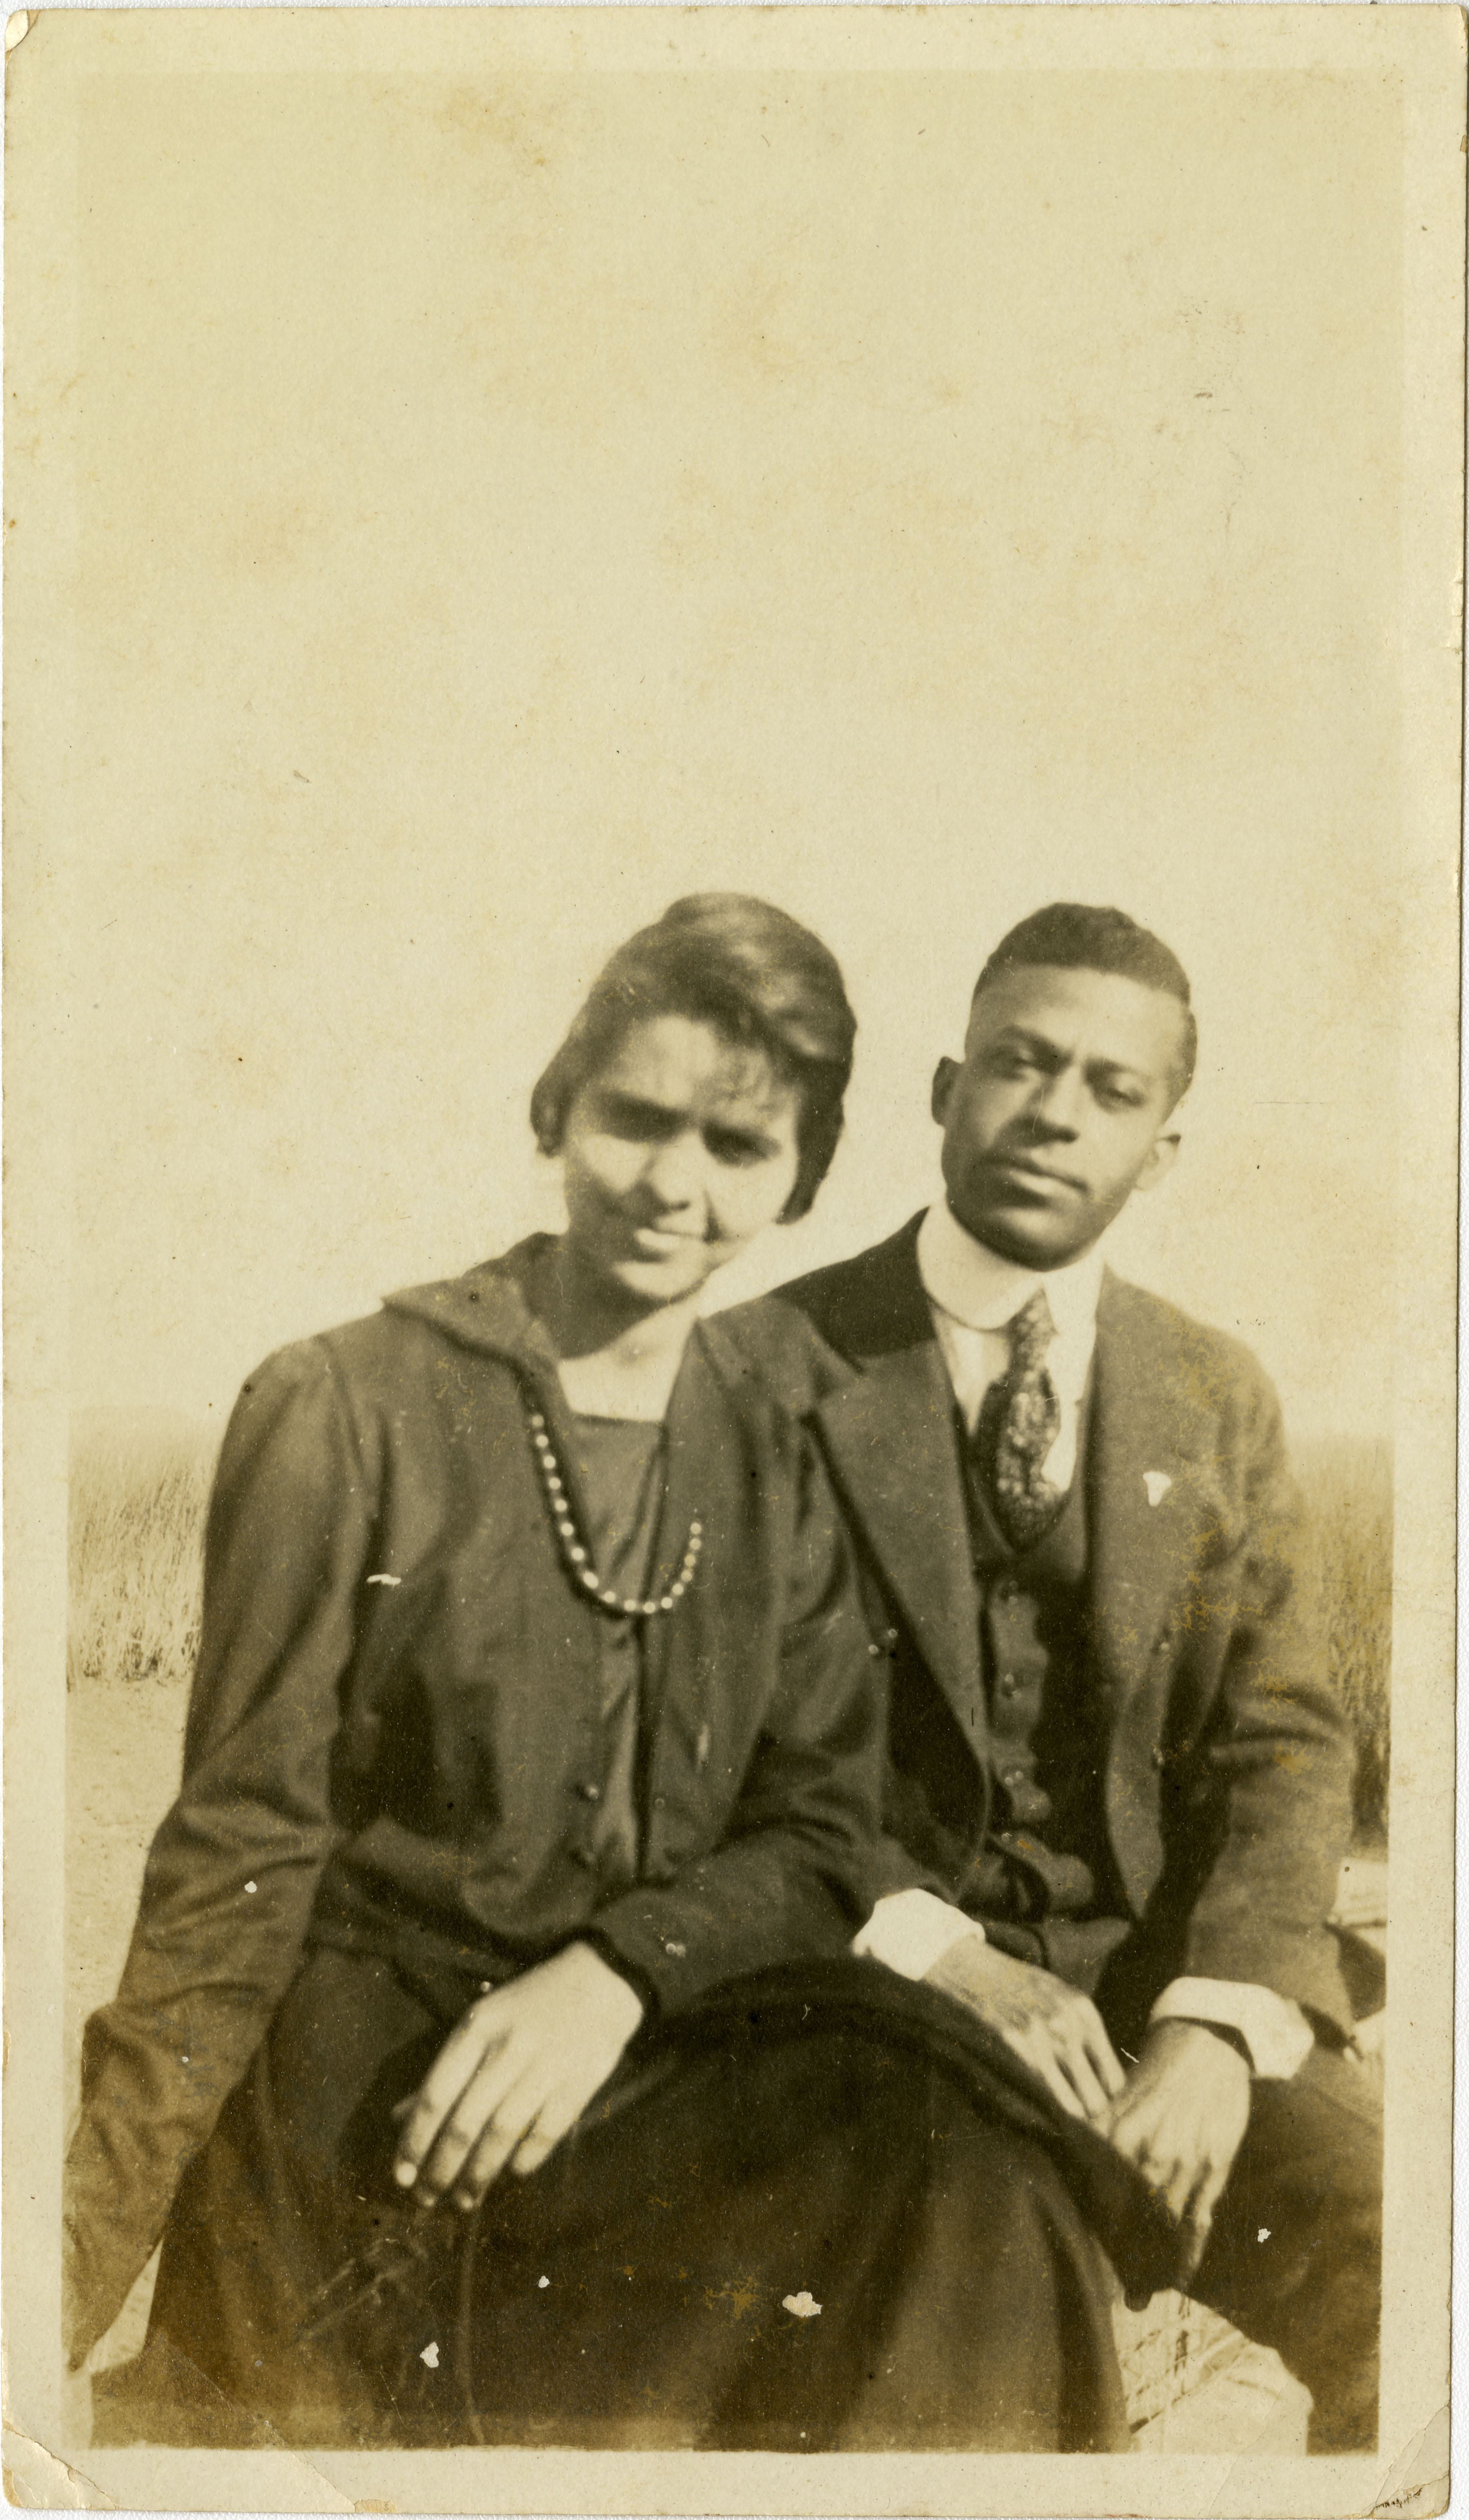 Miriam DeCosta Seabrook and Herbert U. Seabrook, Sr. sitting outside